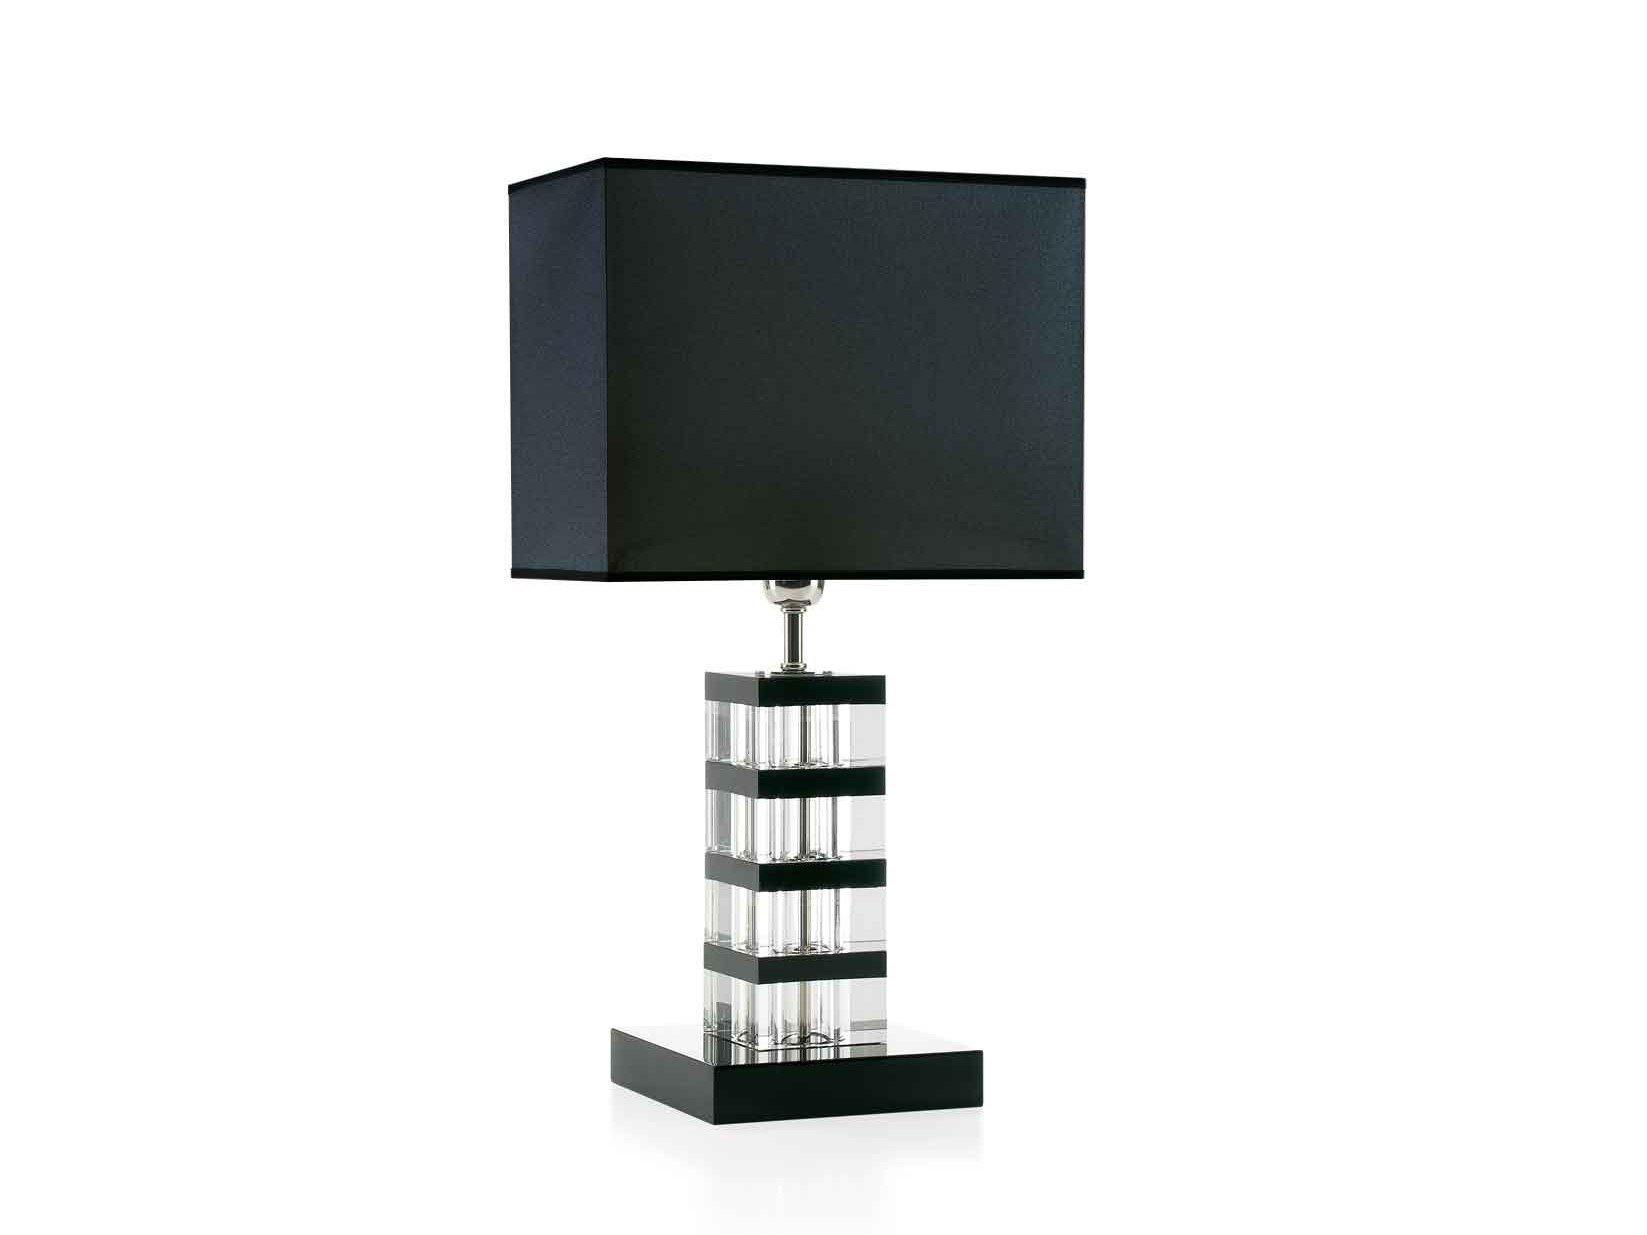 Wood and glass table lamp MANHATTAN by ENVY #455158